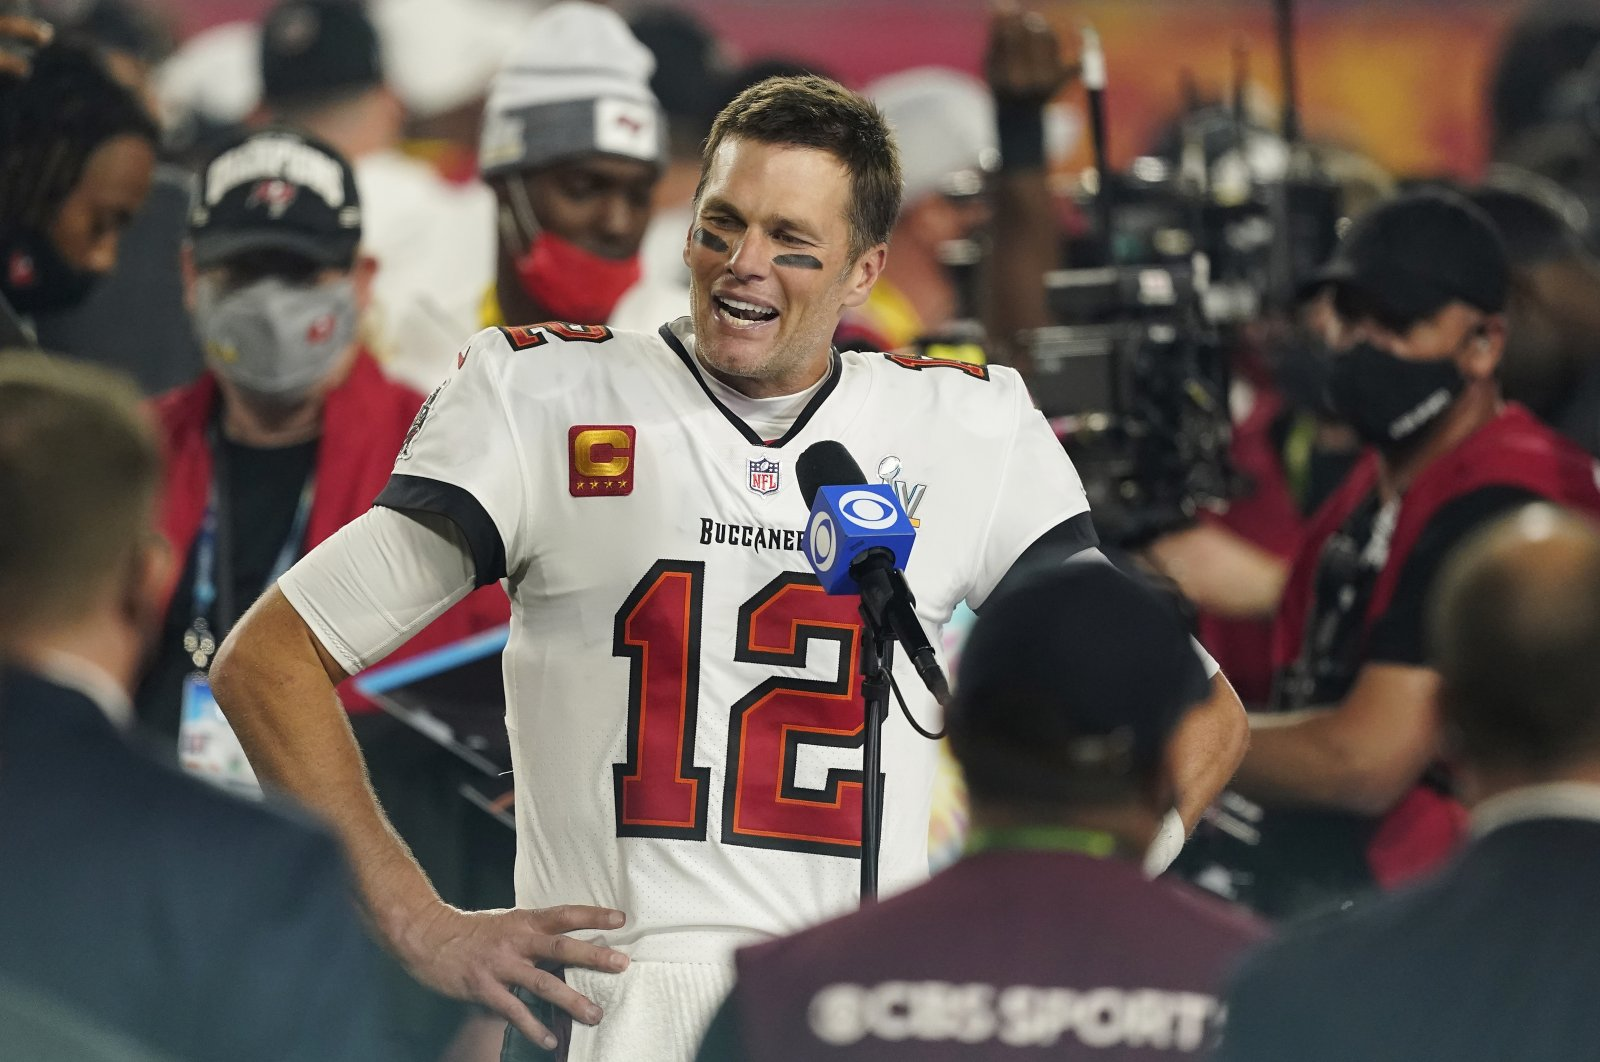 Tampa Bay Buccaneers quarterback Tom Brady (C) speaks after the NFL Super Bowl 55 against the Kansas City Chiefs, in Tampa, Florida, U.S., Feb. 7, 2021. (AP Photo)